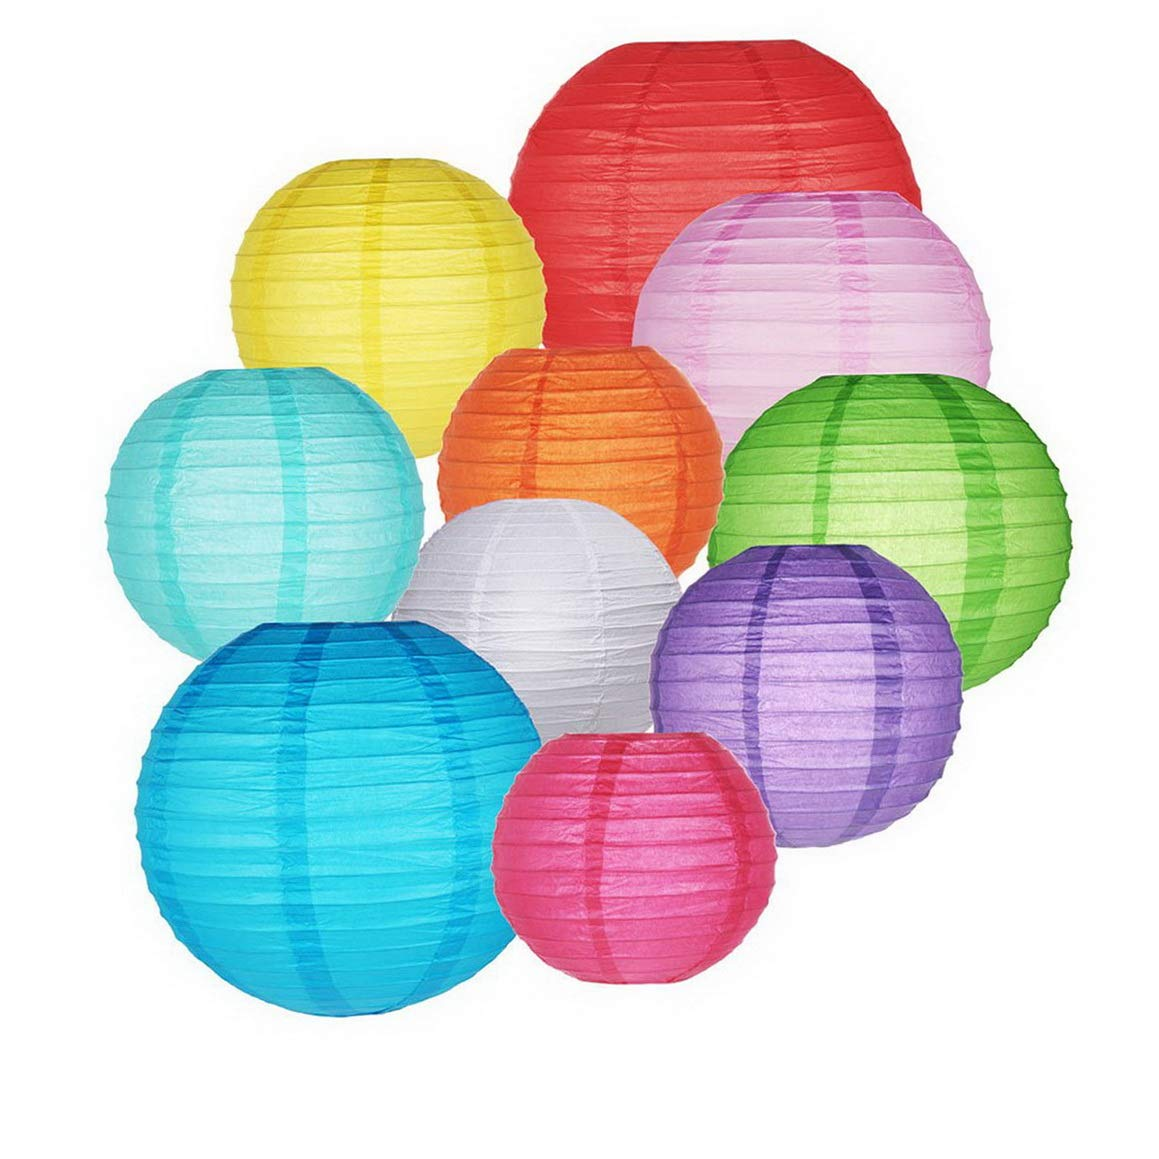 Kaputar 10 Packs Paper Lanterns Colorful Chinese Round Lantern Hanging Decorations with Assorted Rainbow Colors and Sizes for Shower Ceiling Supplies | Model WDDNG -1452